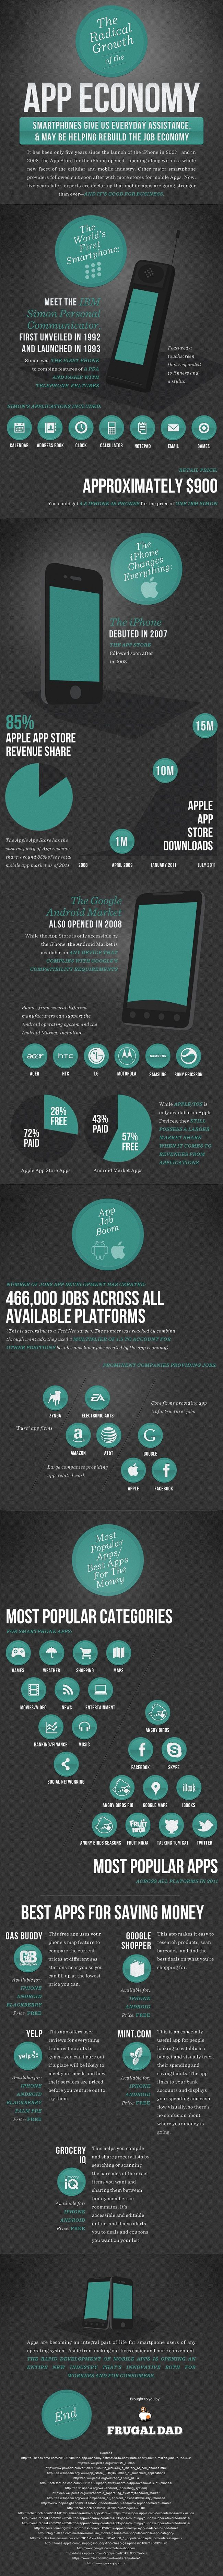 The Radical Growth of the Application Economy